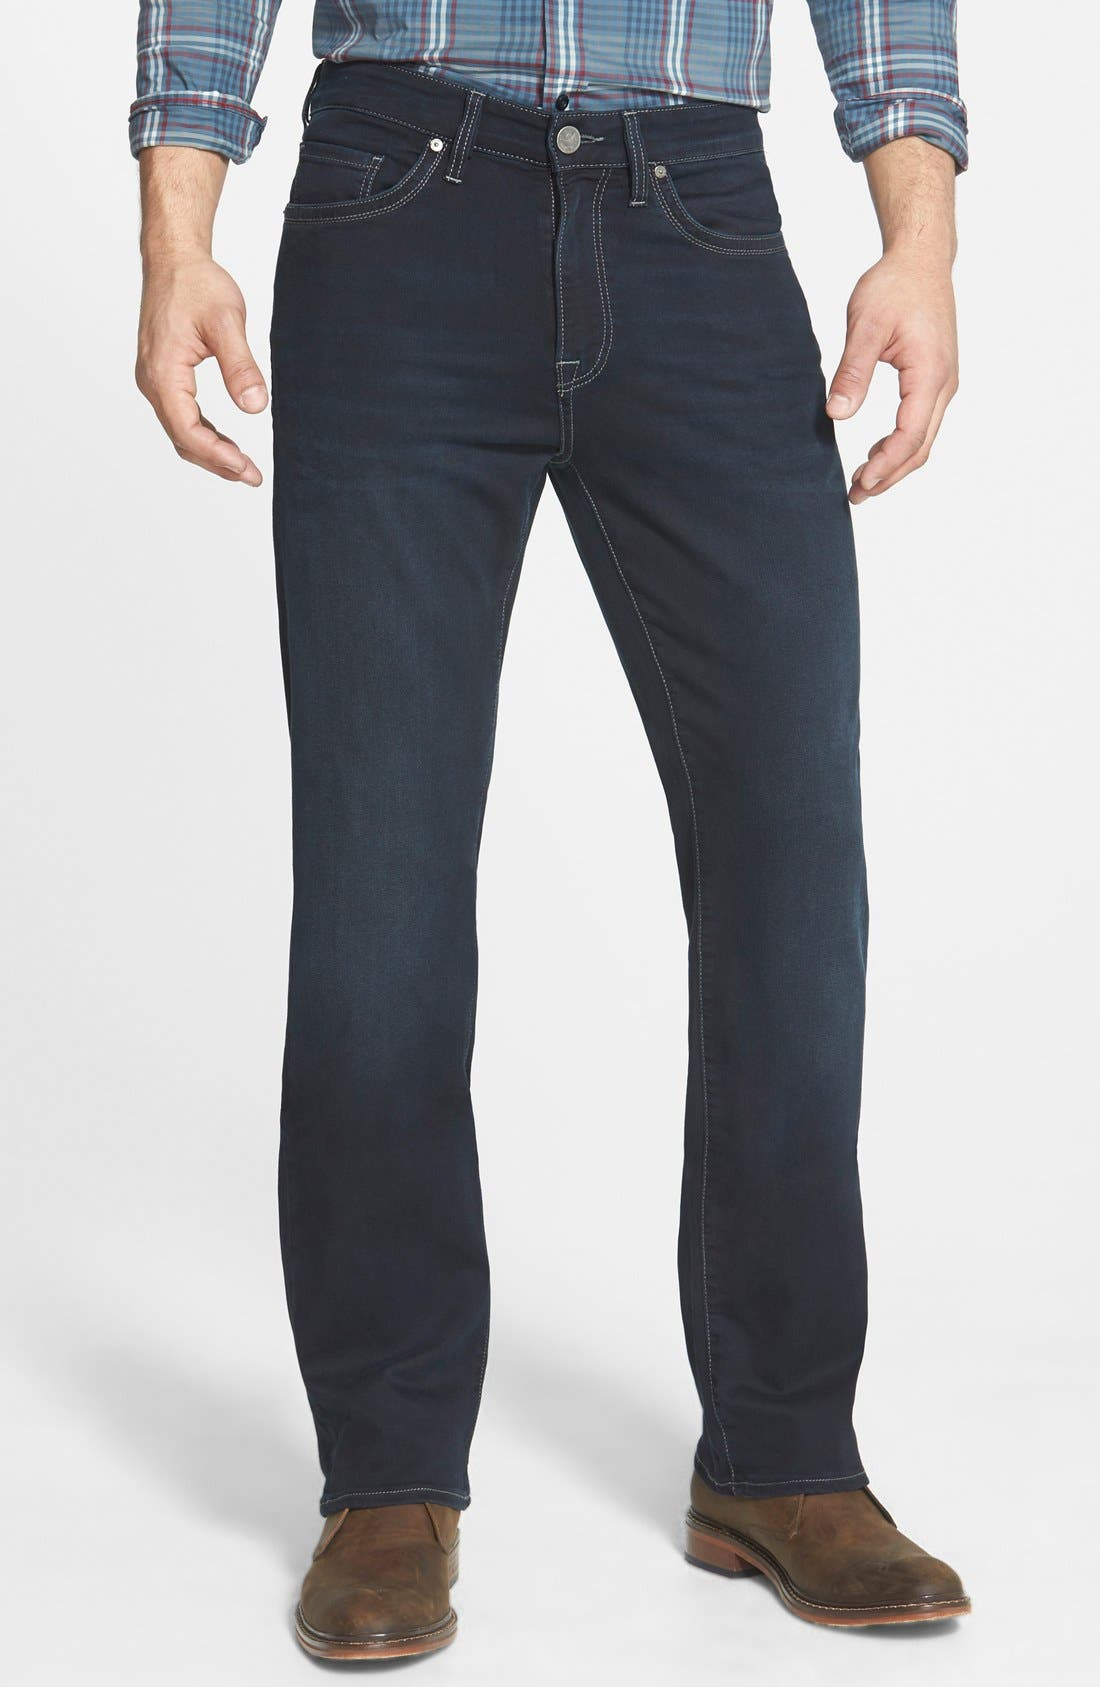 Main Image - 34 Heritage 'Charisma' Classic Relaxed Fit Jeans (Midnight Austin) (Online Only)